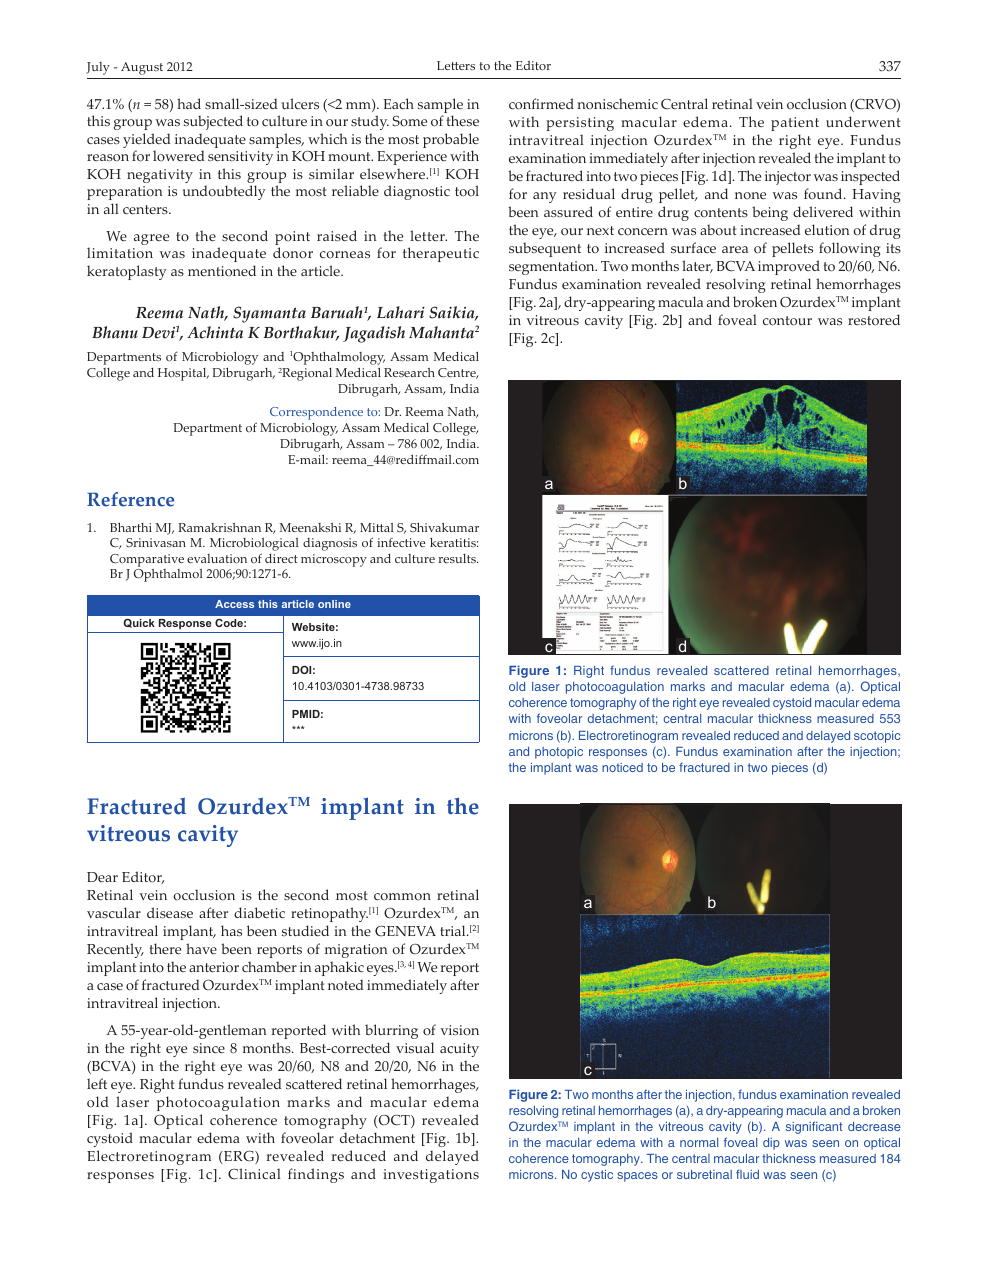 Fractured Ozurdex TM implant in the vitreous cavity – topic